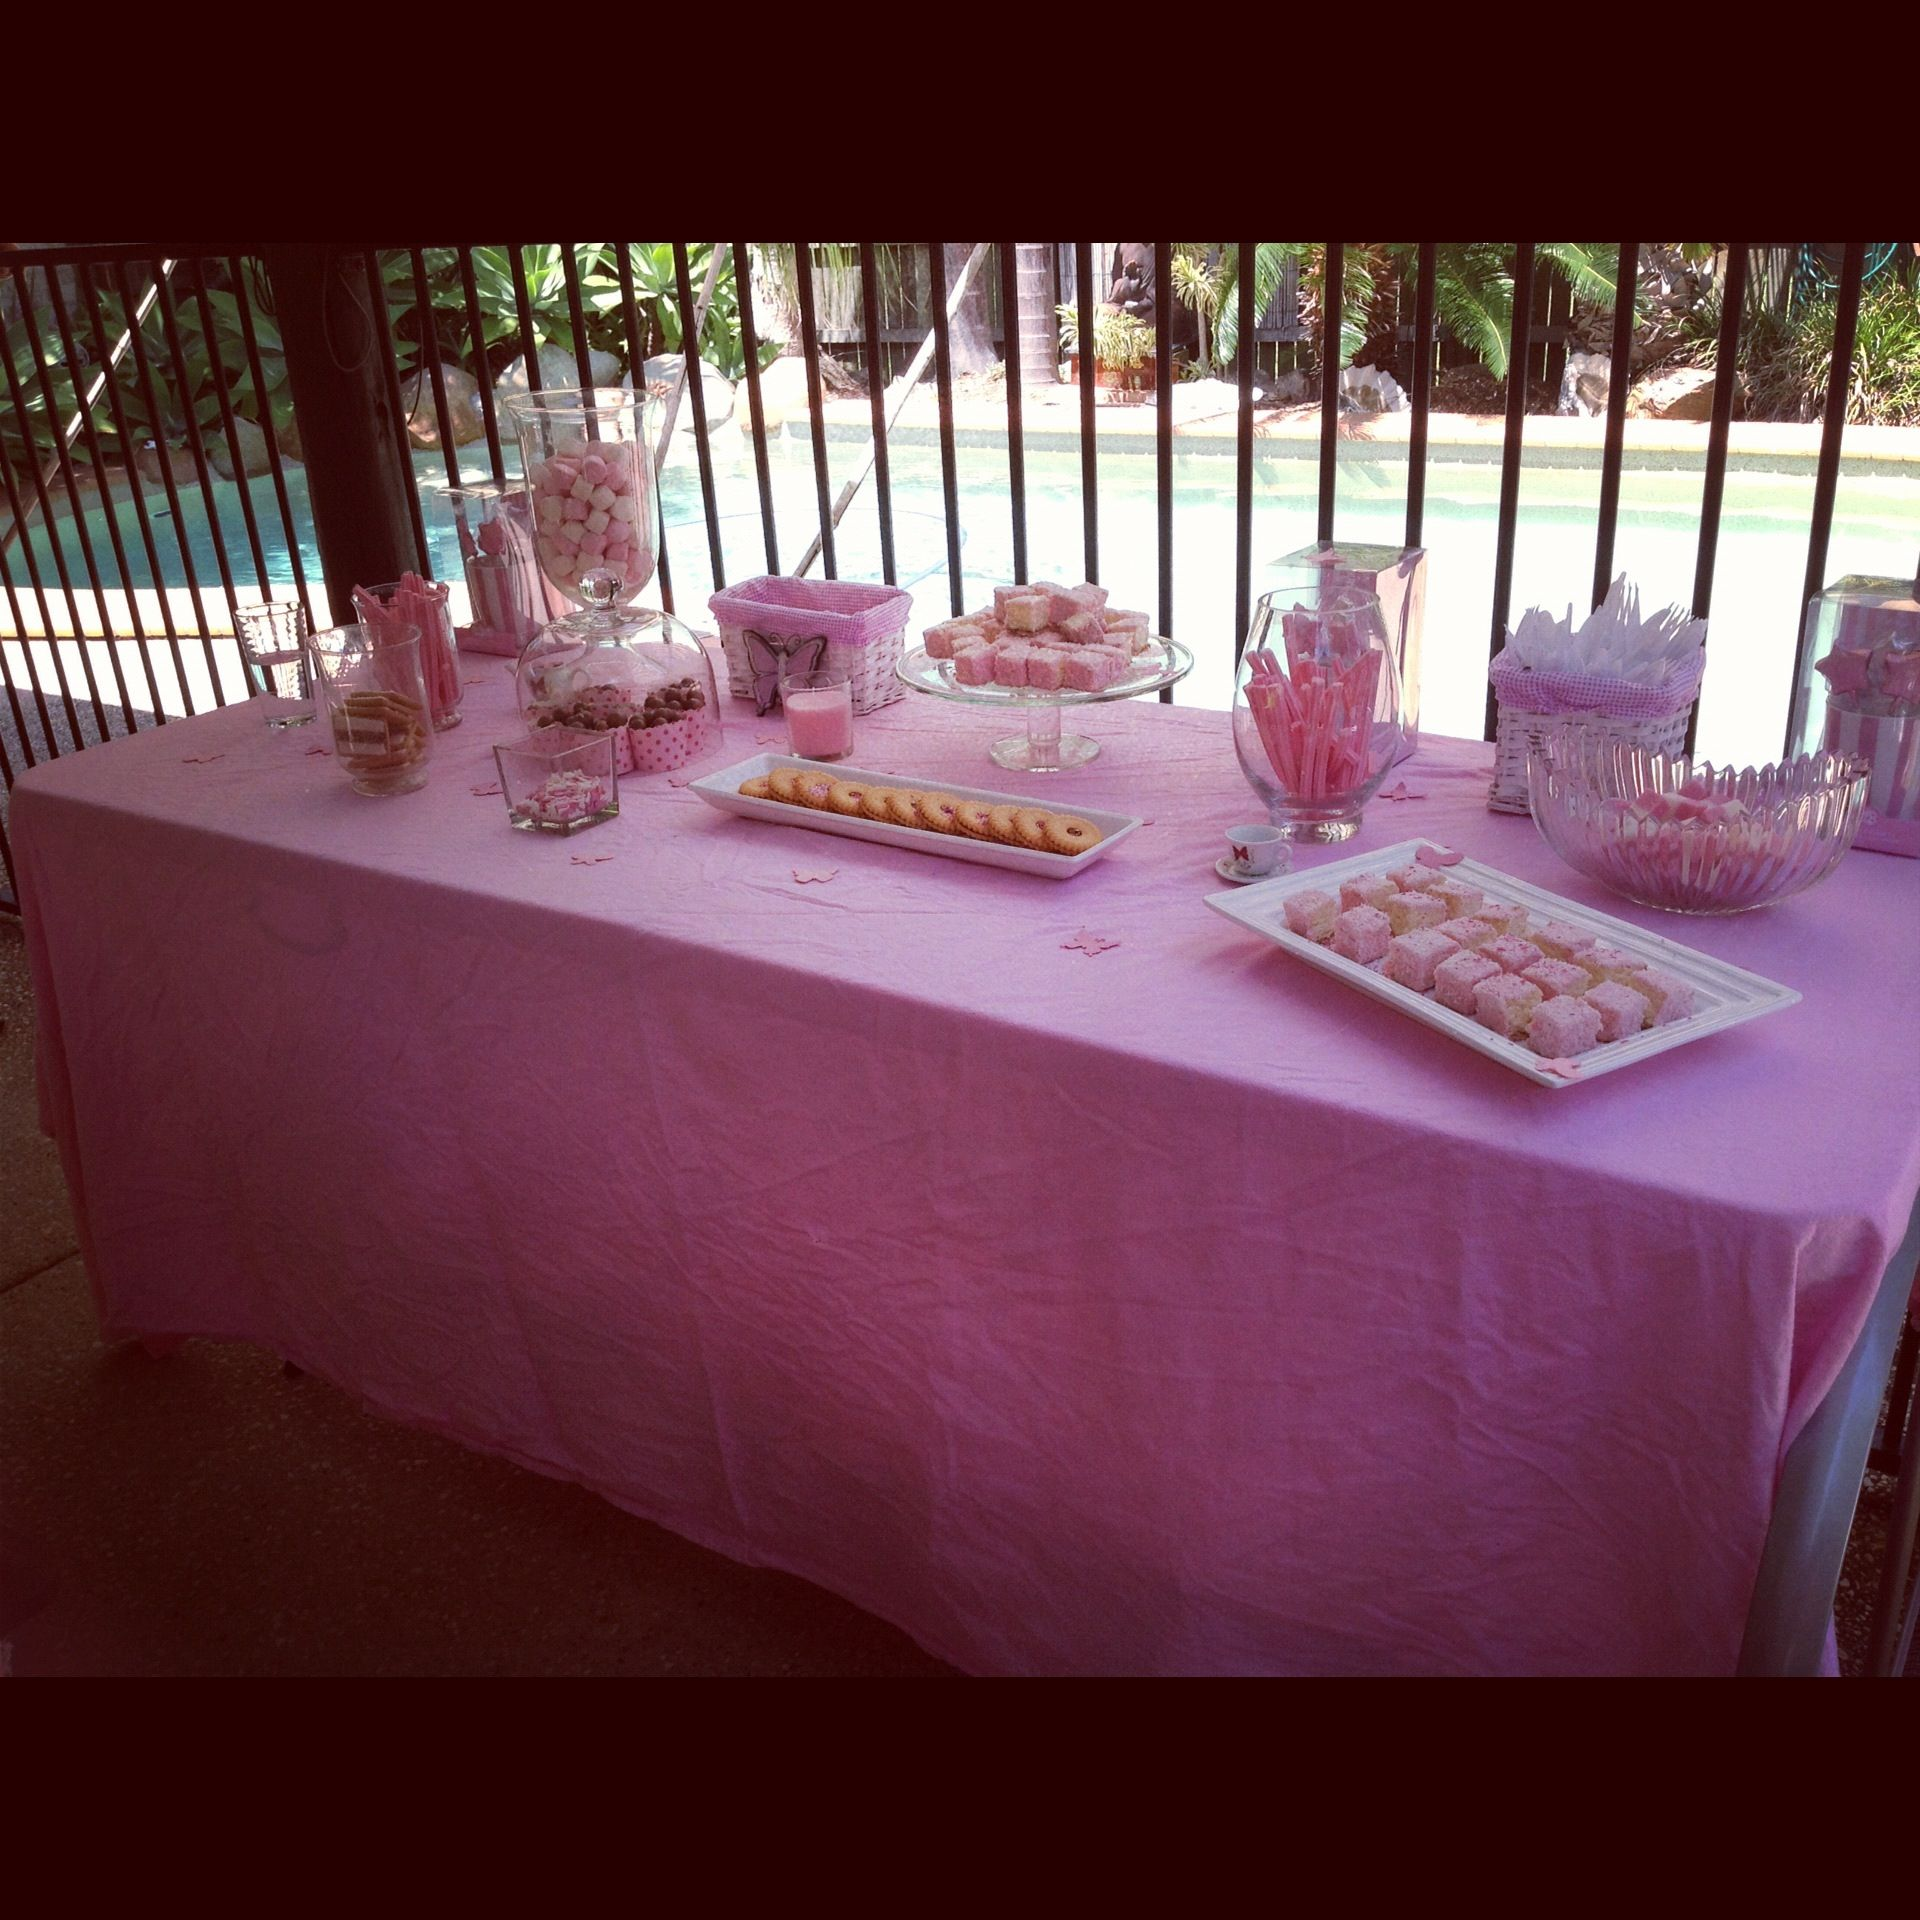 How To Organize A Baby Shower Part - 30: How To Plan A Baby Shower Baby Girl Baby Shower Sweets Buffet Pink U0026 White